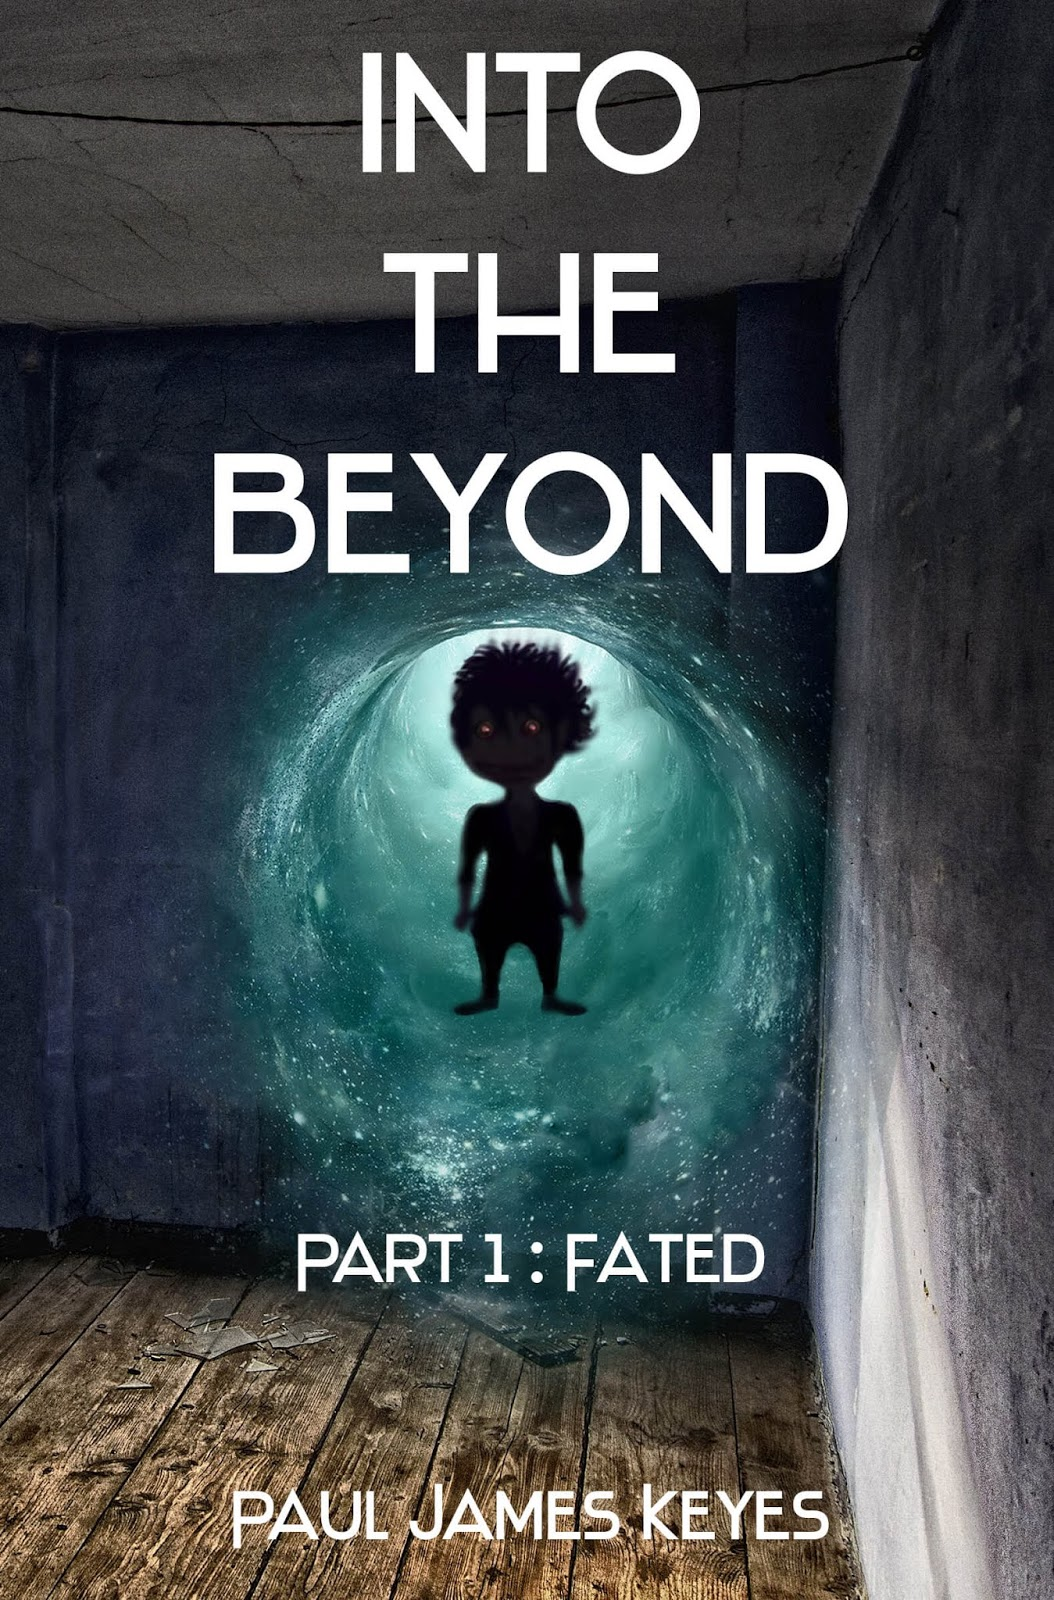 Into the Beyond - Part 1: Fated